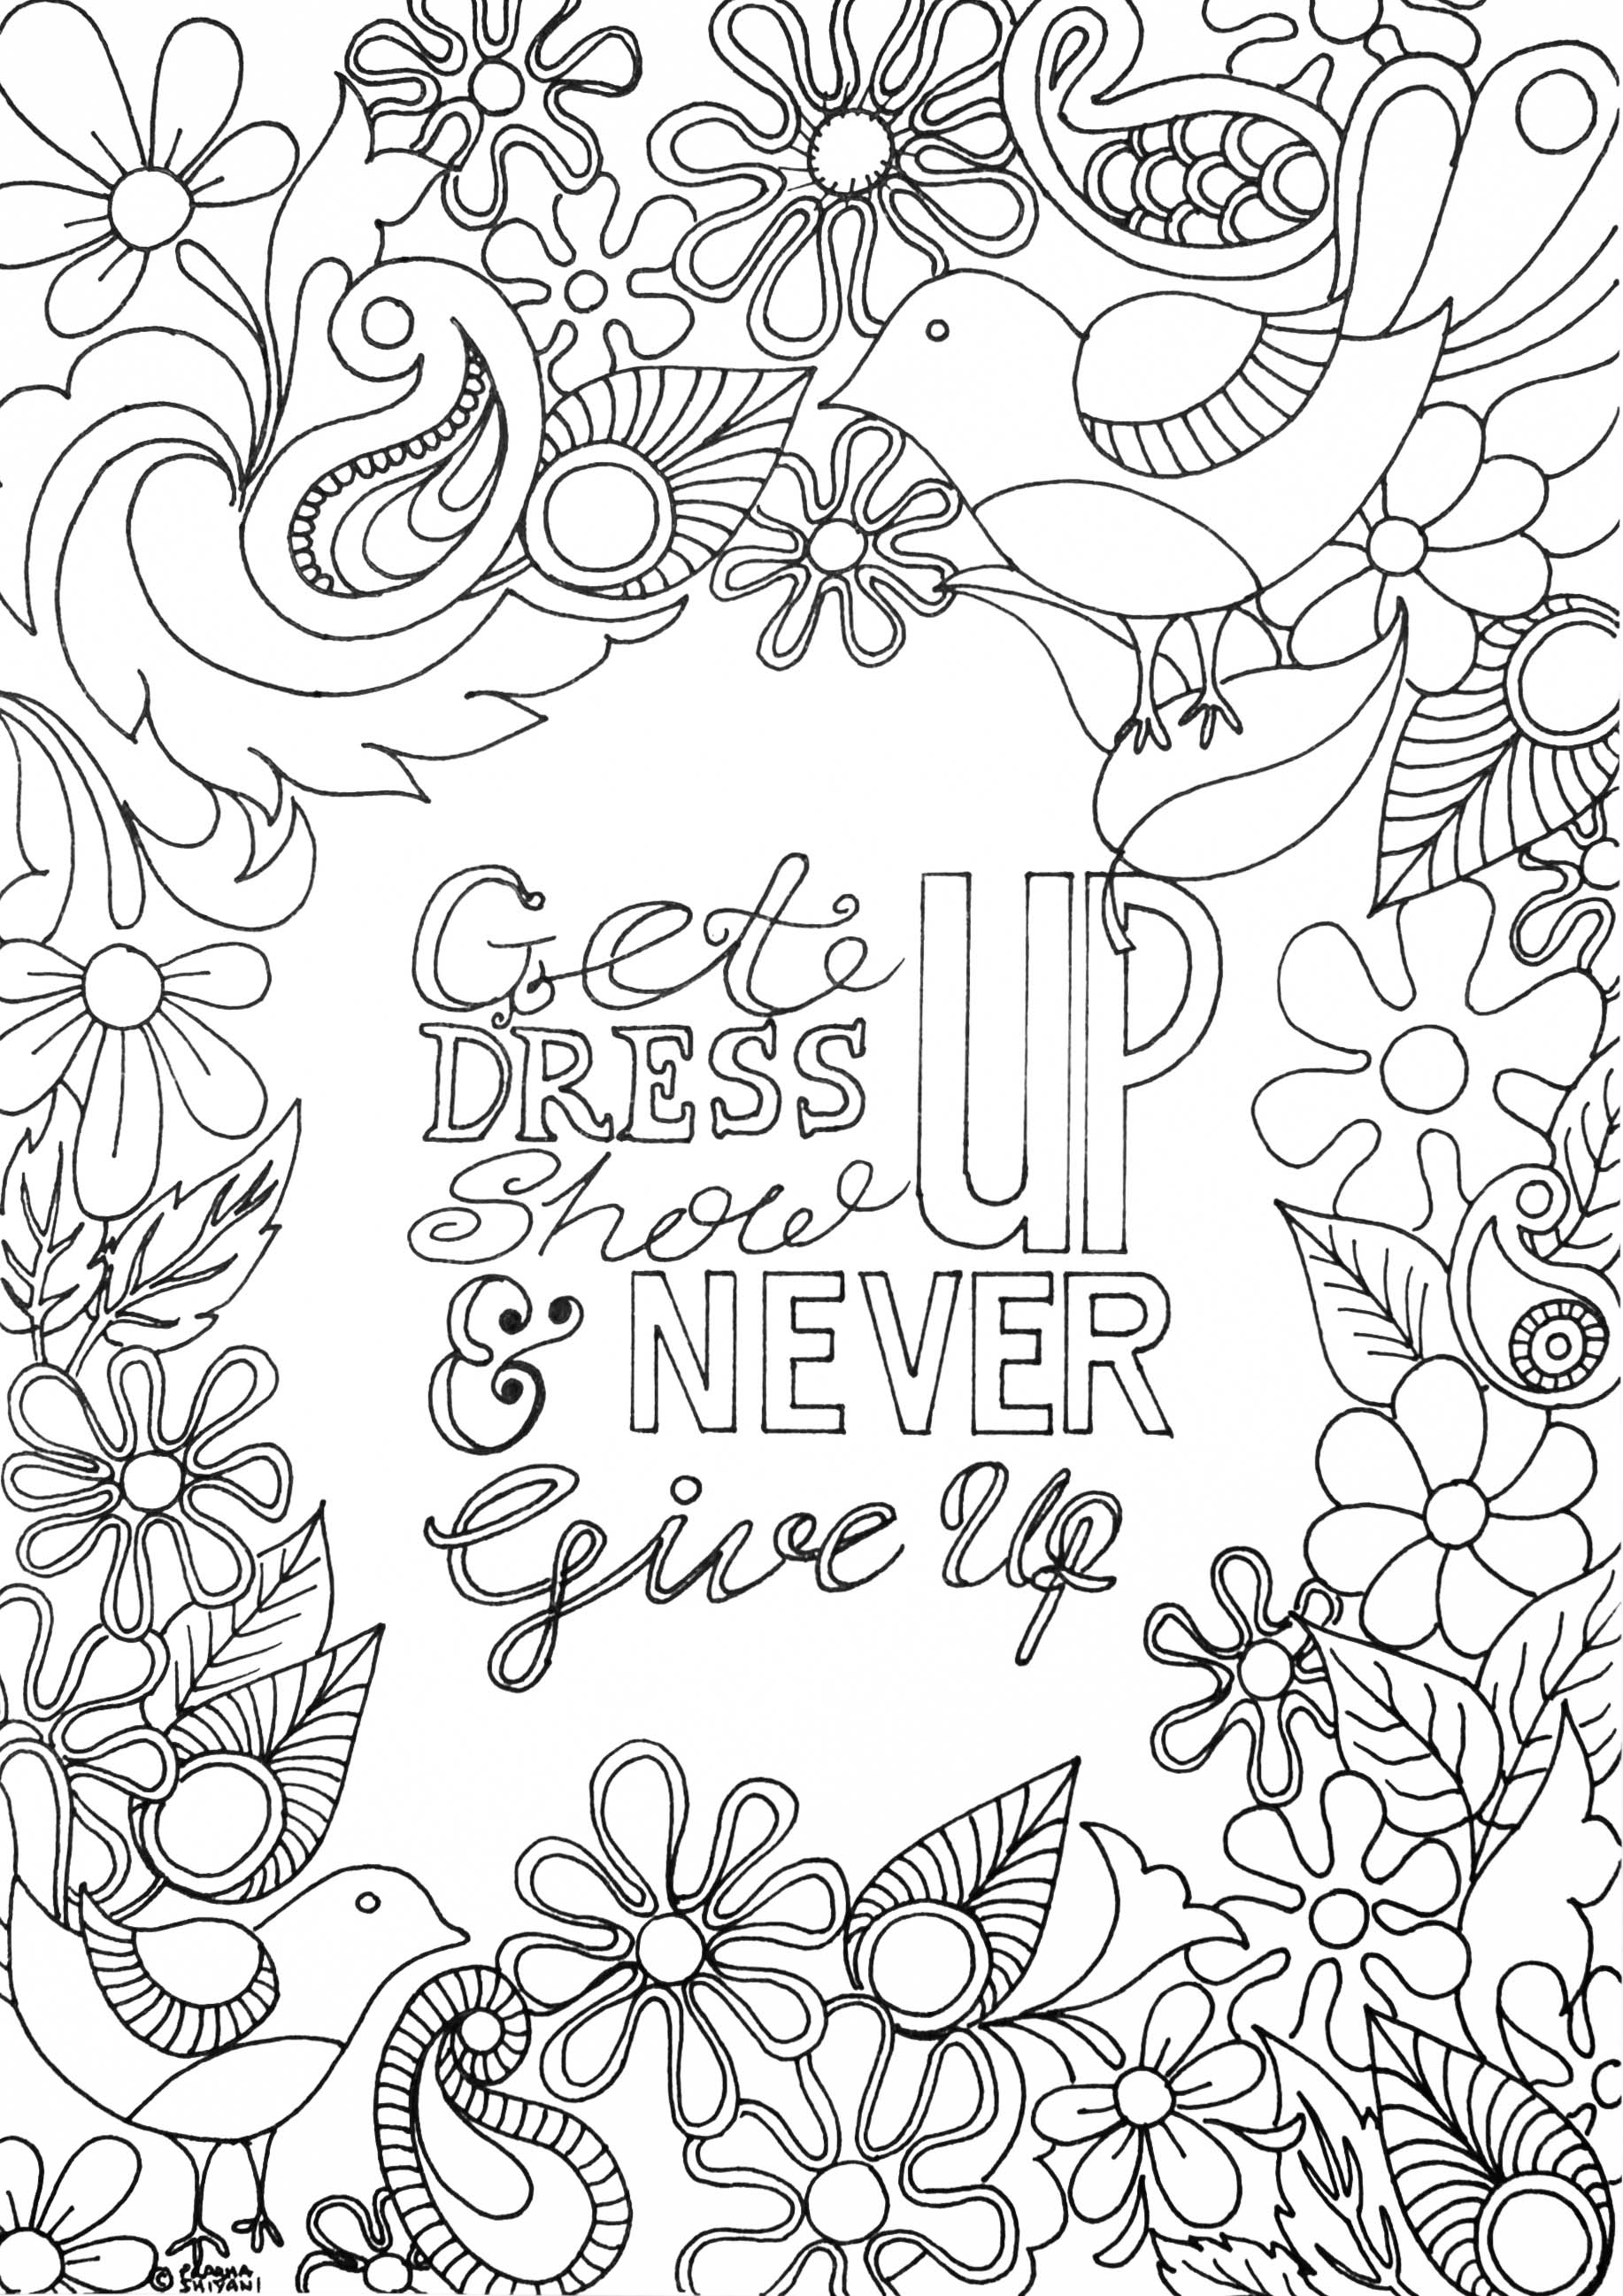 Mindfulness Activity Coloring Coloring Pages